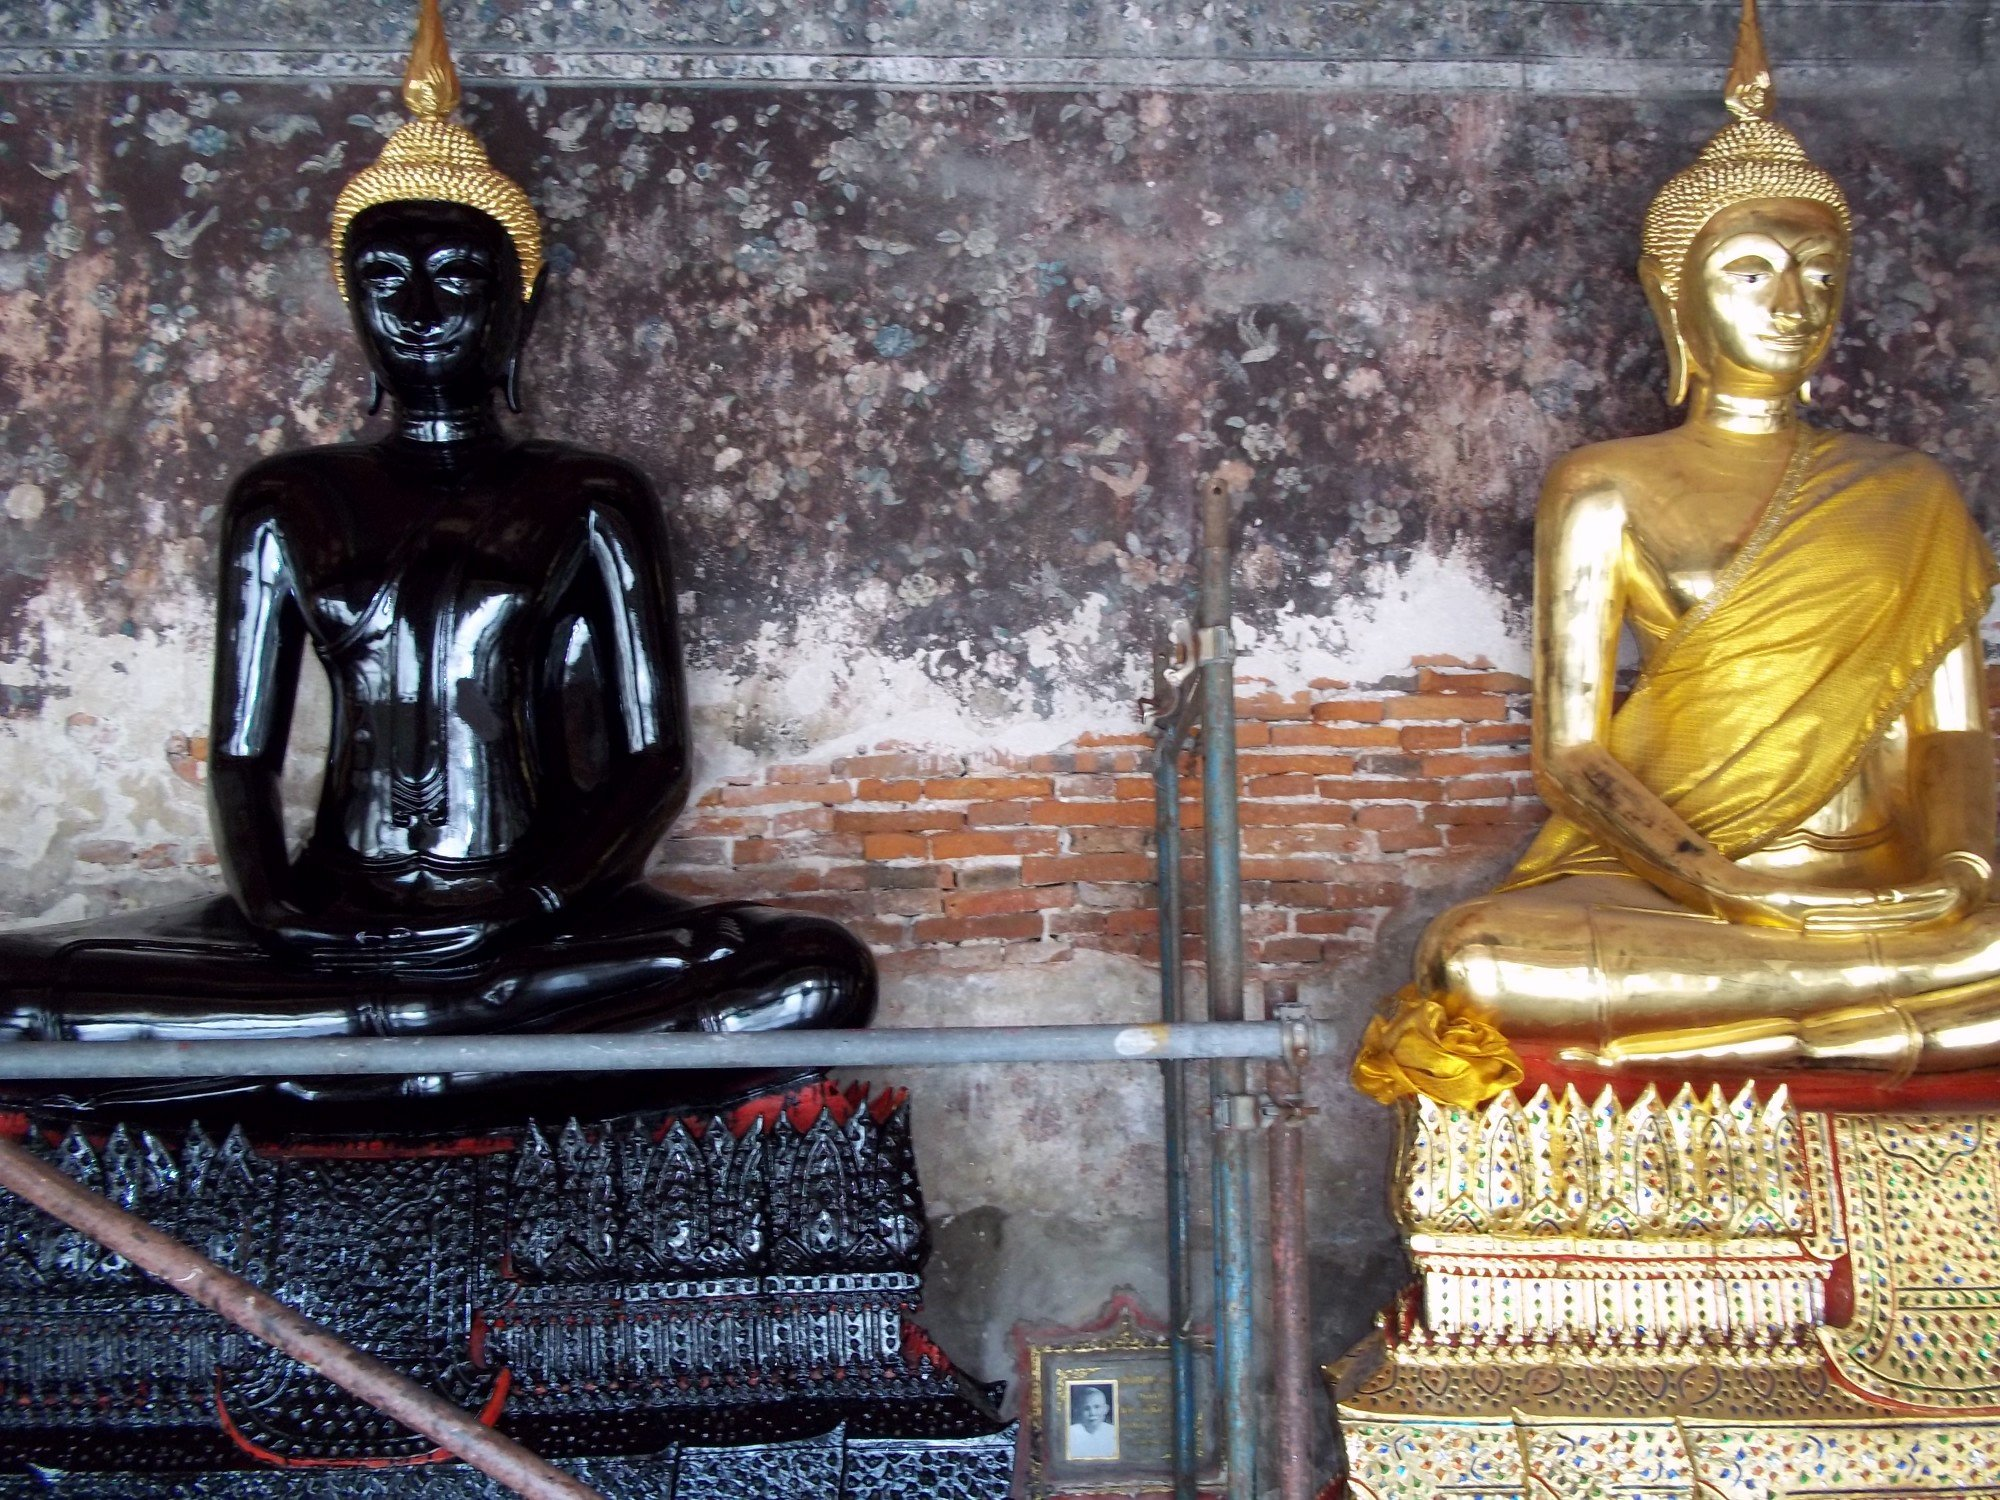 Statues inside the wall at Wat Suthat Thepwararam